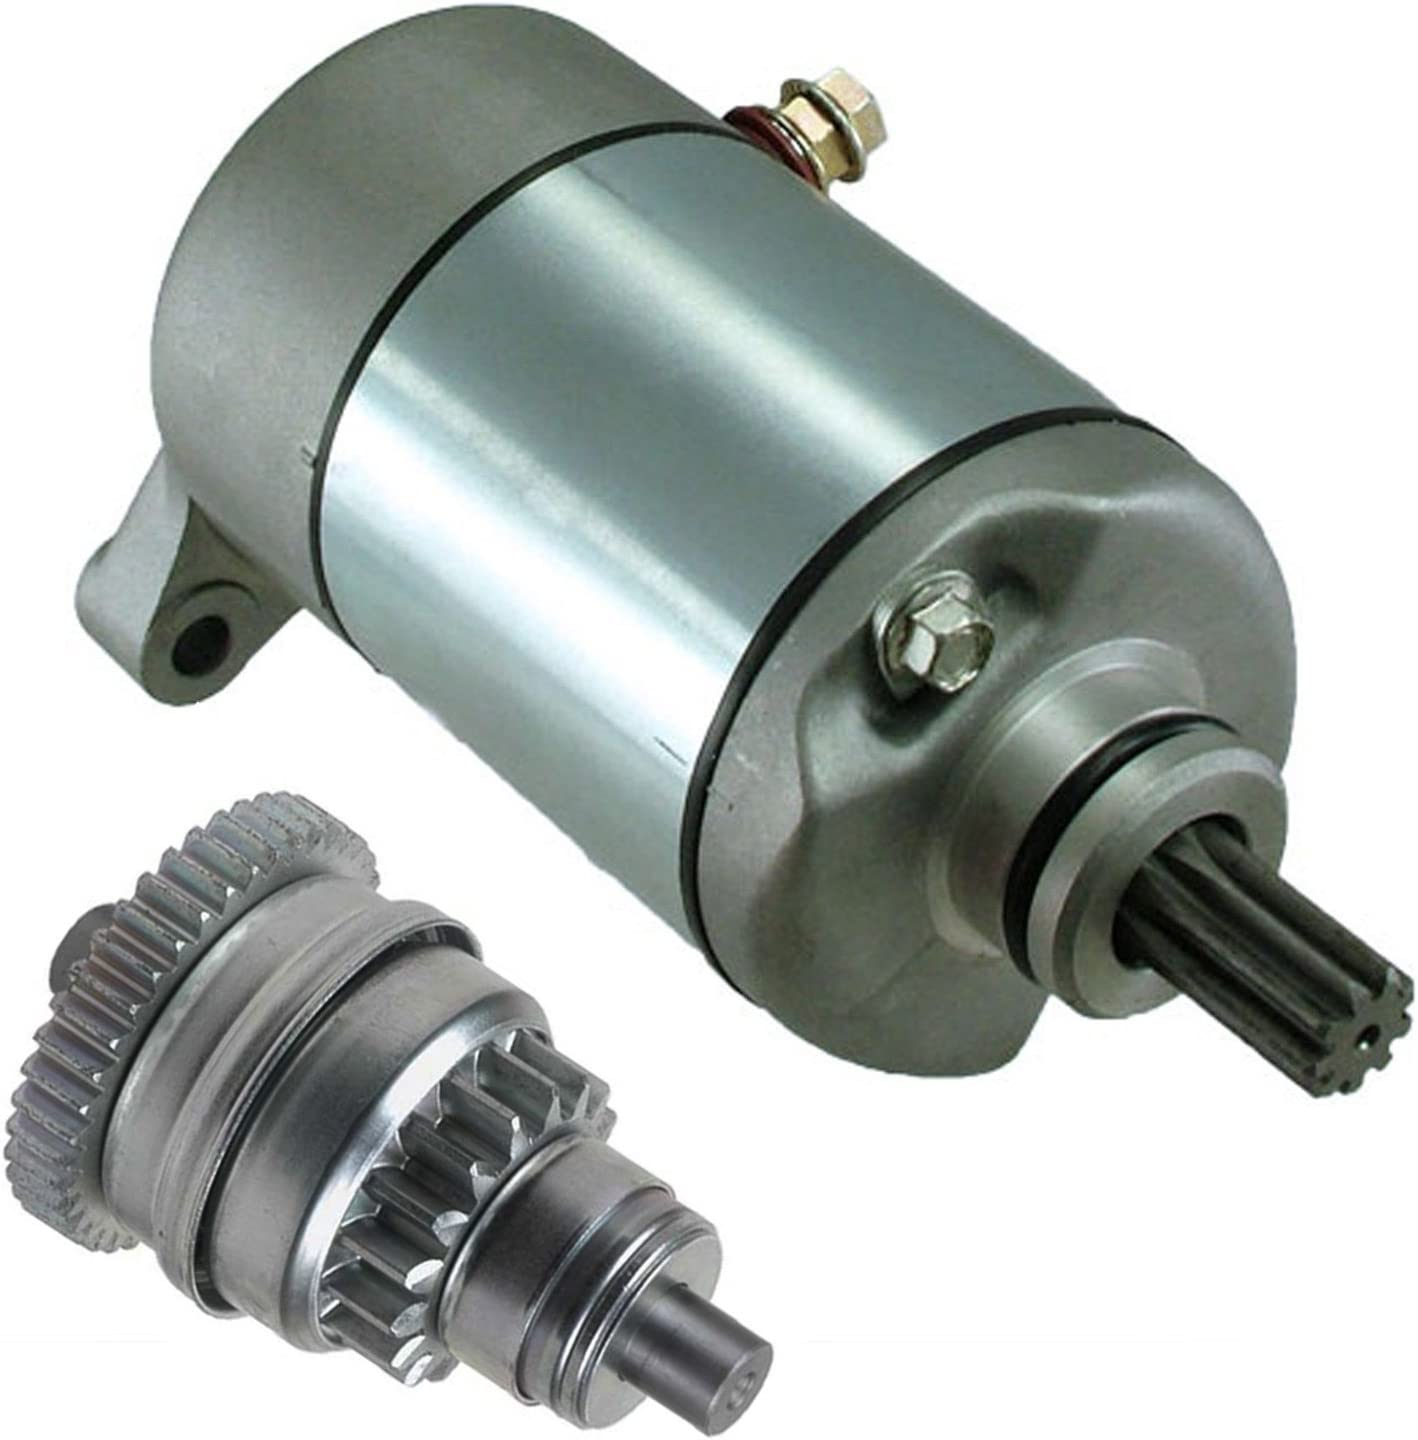 PROCOMPANY Starter and Drive Bendix Replaces FOR Polaris SPORTSMAN 400 HO 4X4 2011 2012 2013 2014